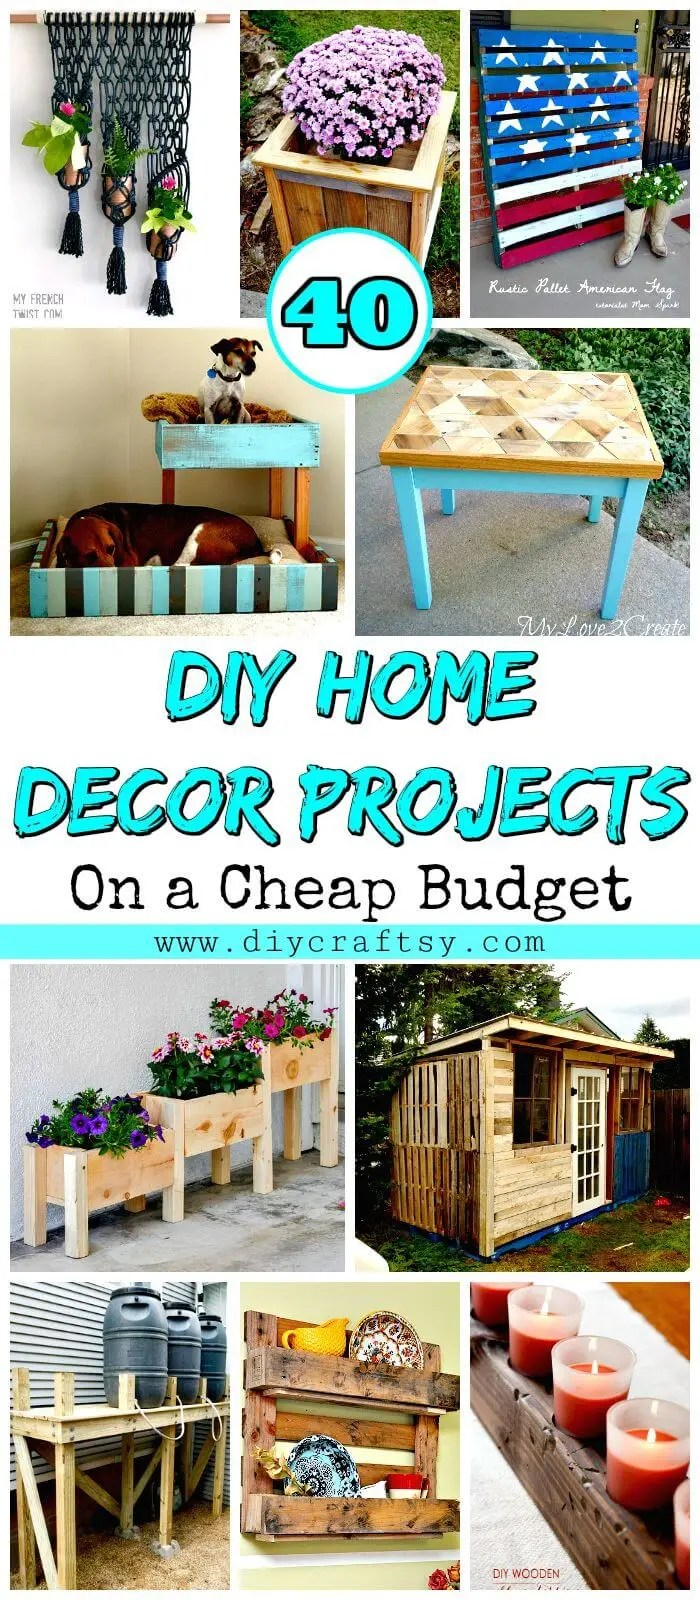 Elegant Diy Home Decor Projects Diy Home Decor Projects On A Cheap Budget Diy Crafts Diy Home Decor Projects Pinterest Diy Spring Home Decor Projects home decor Diy Home Decorating Projects